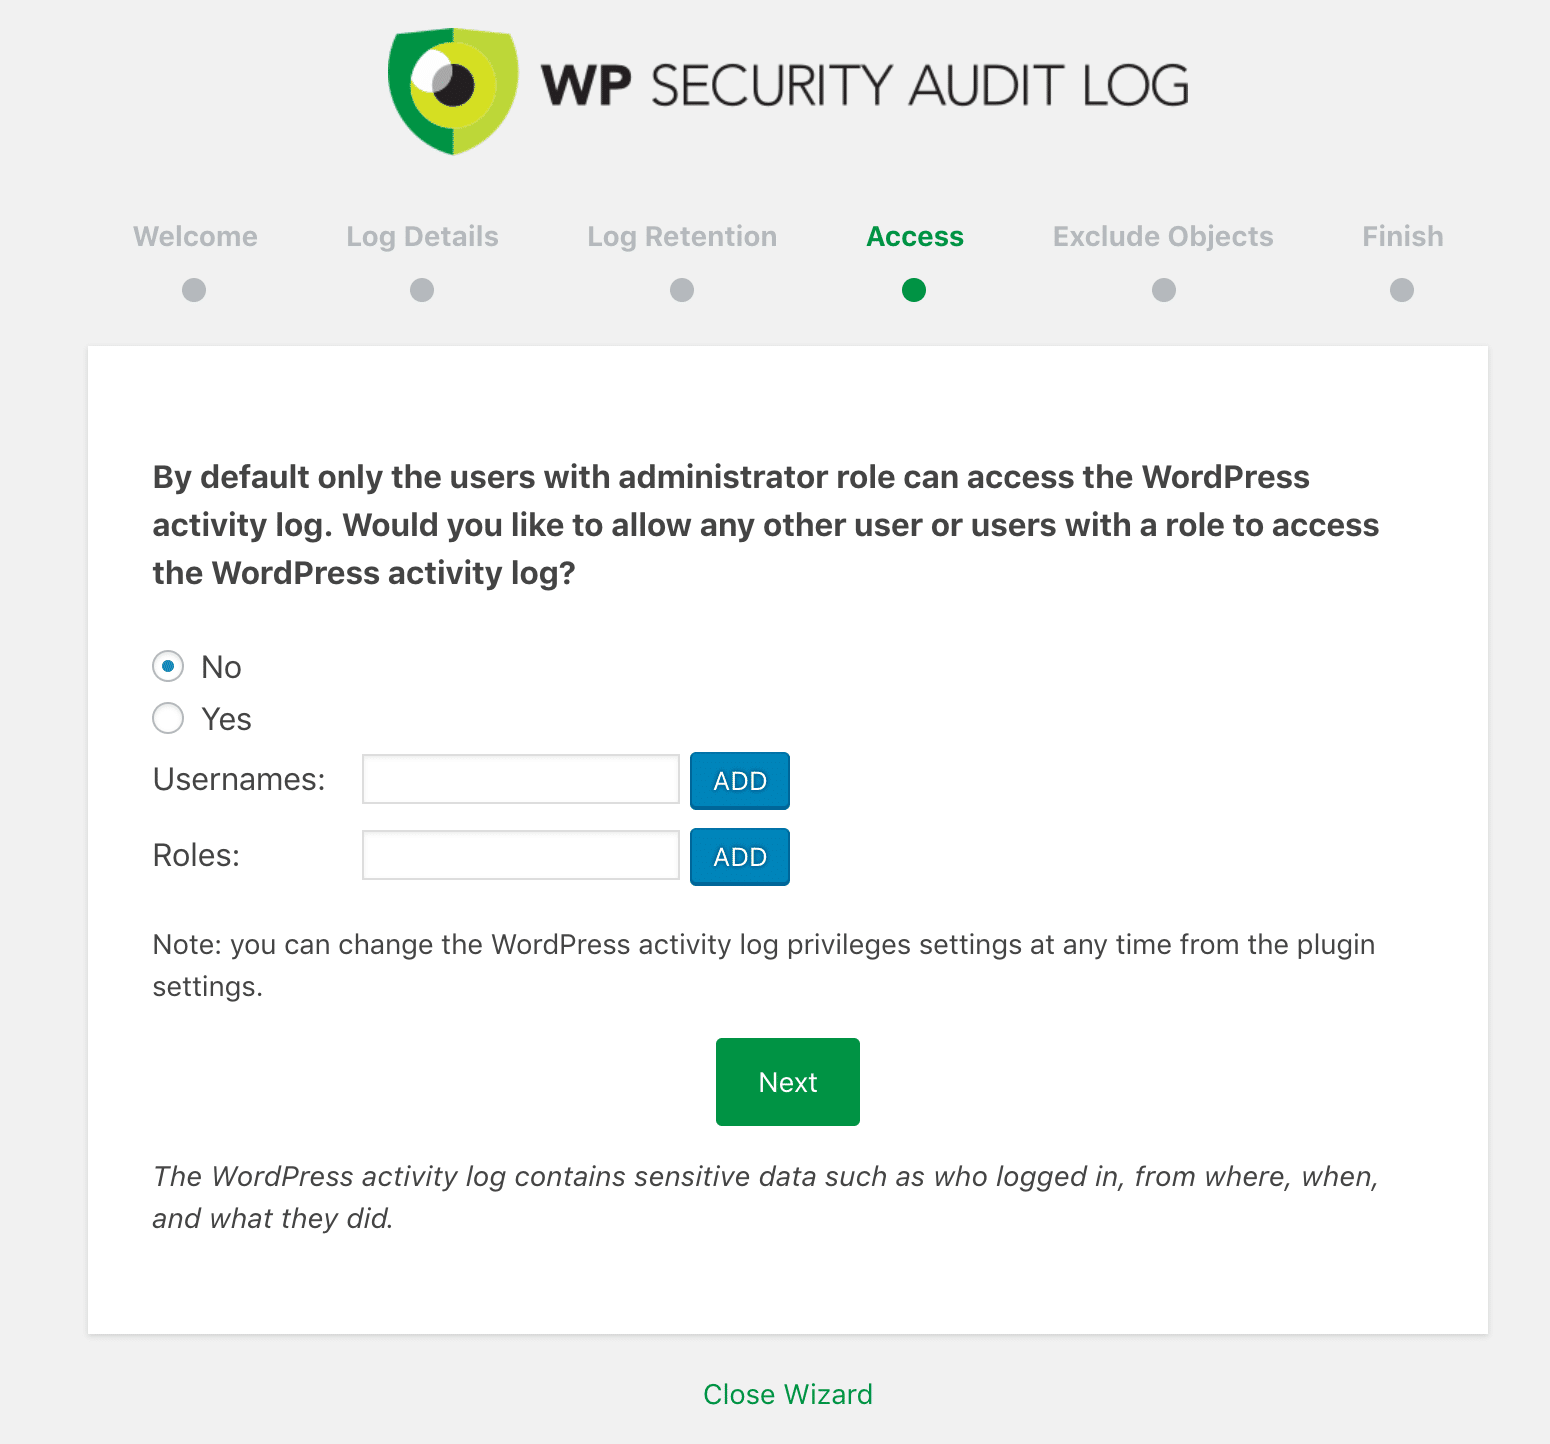 WP Security Audit Log access